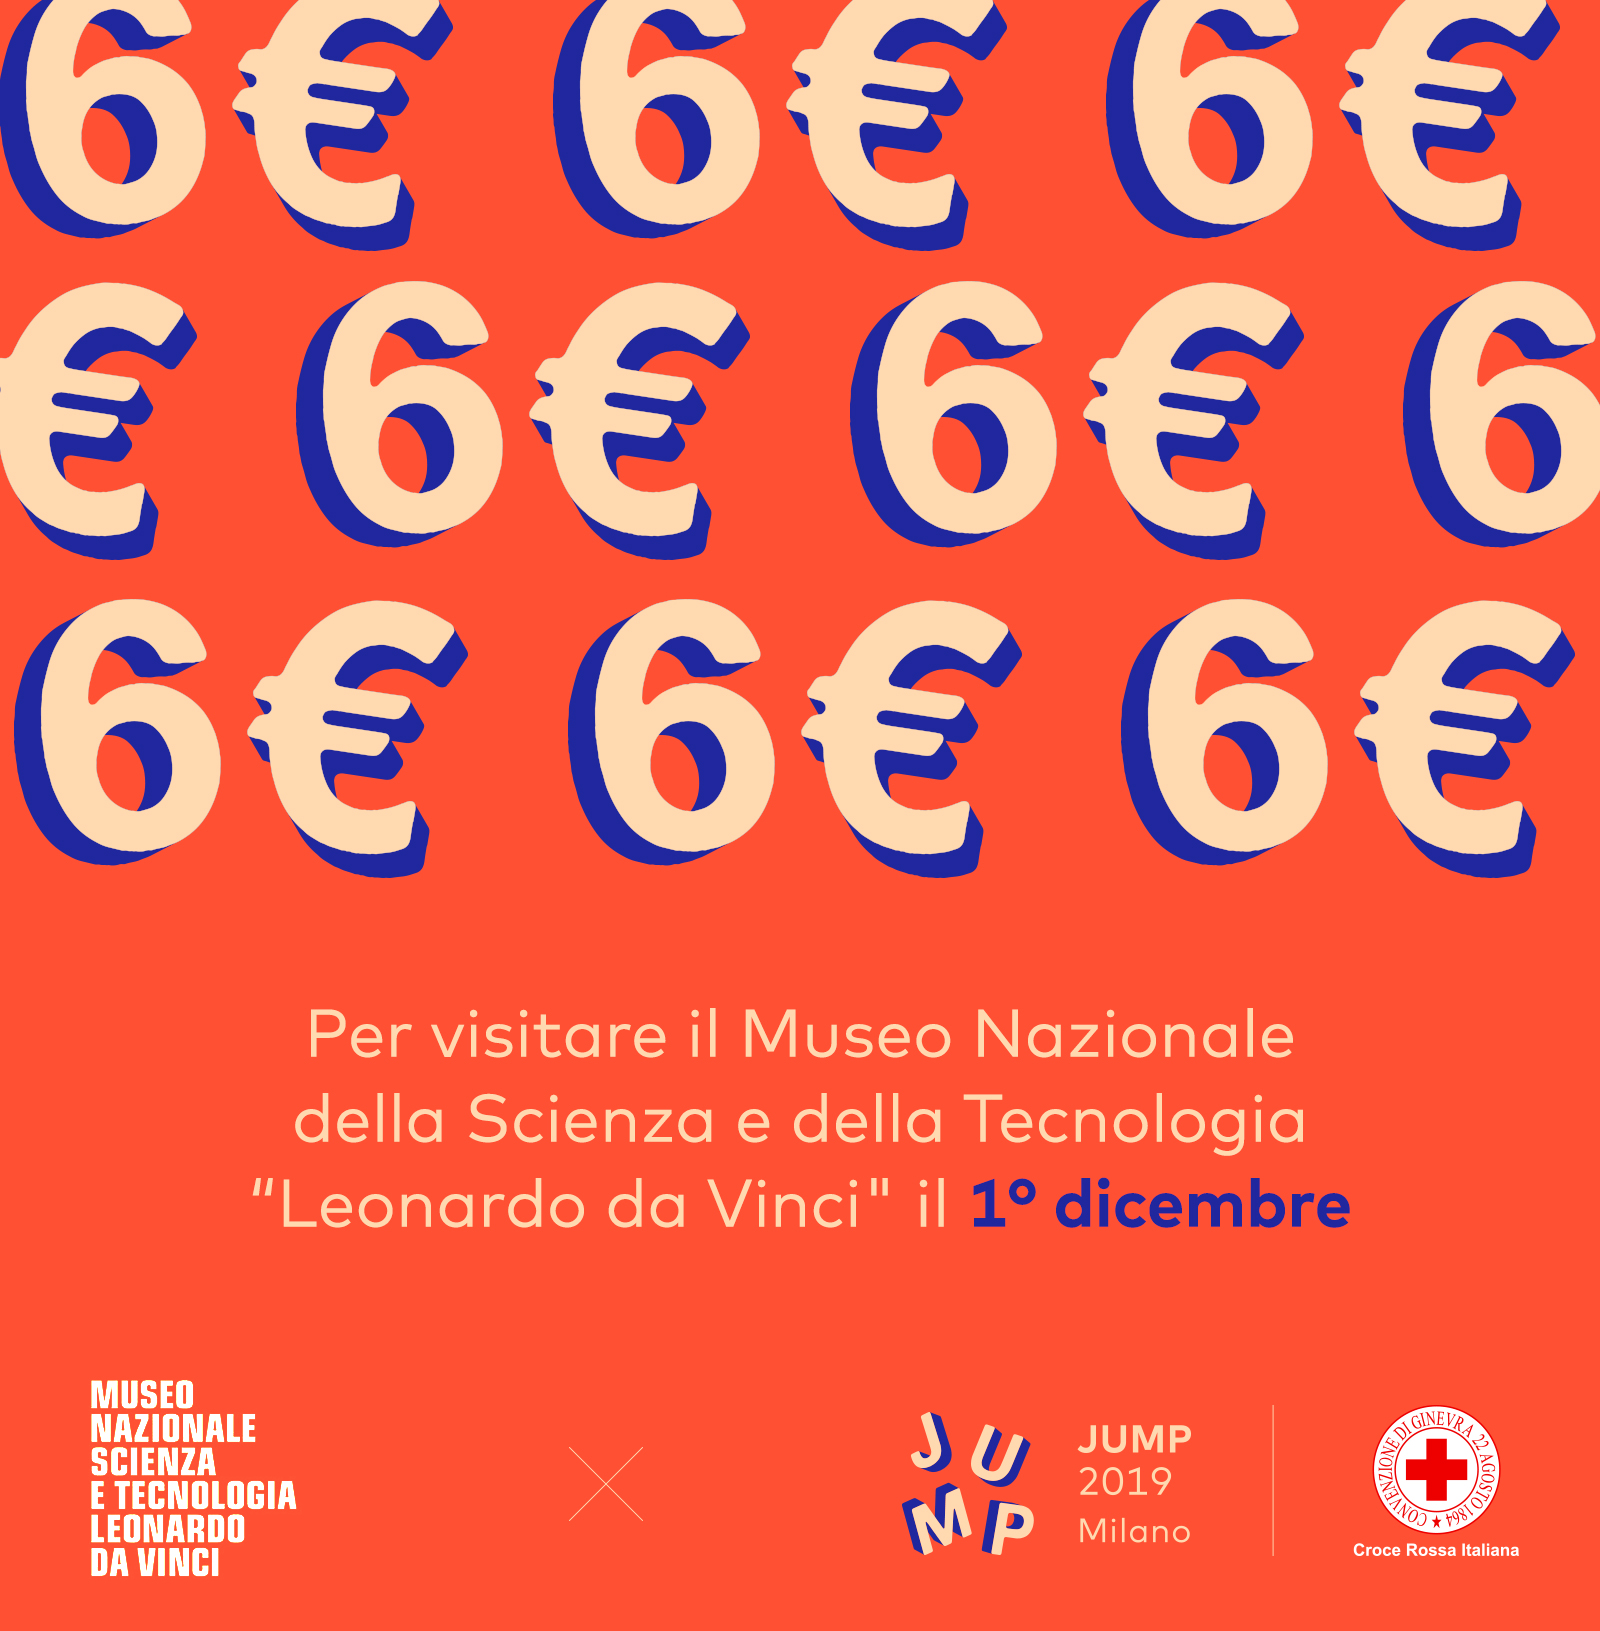 NEWS-MuseoLeonardo-WebsiteNews-1600px